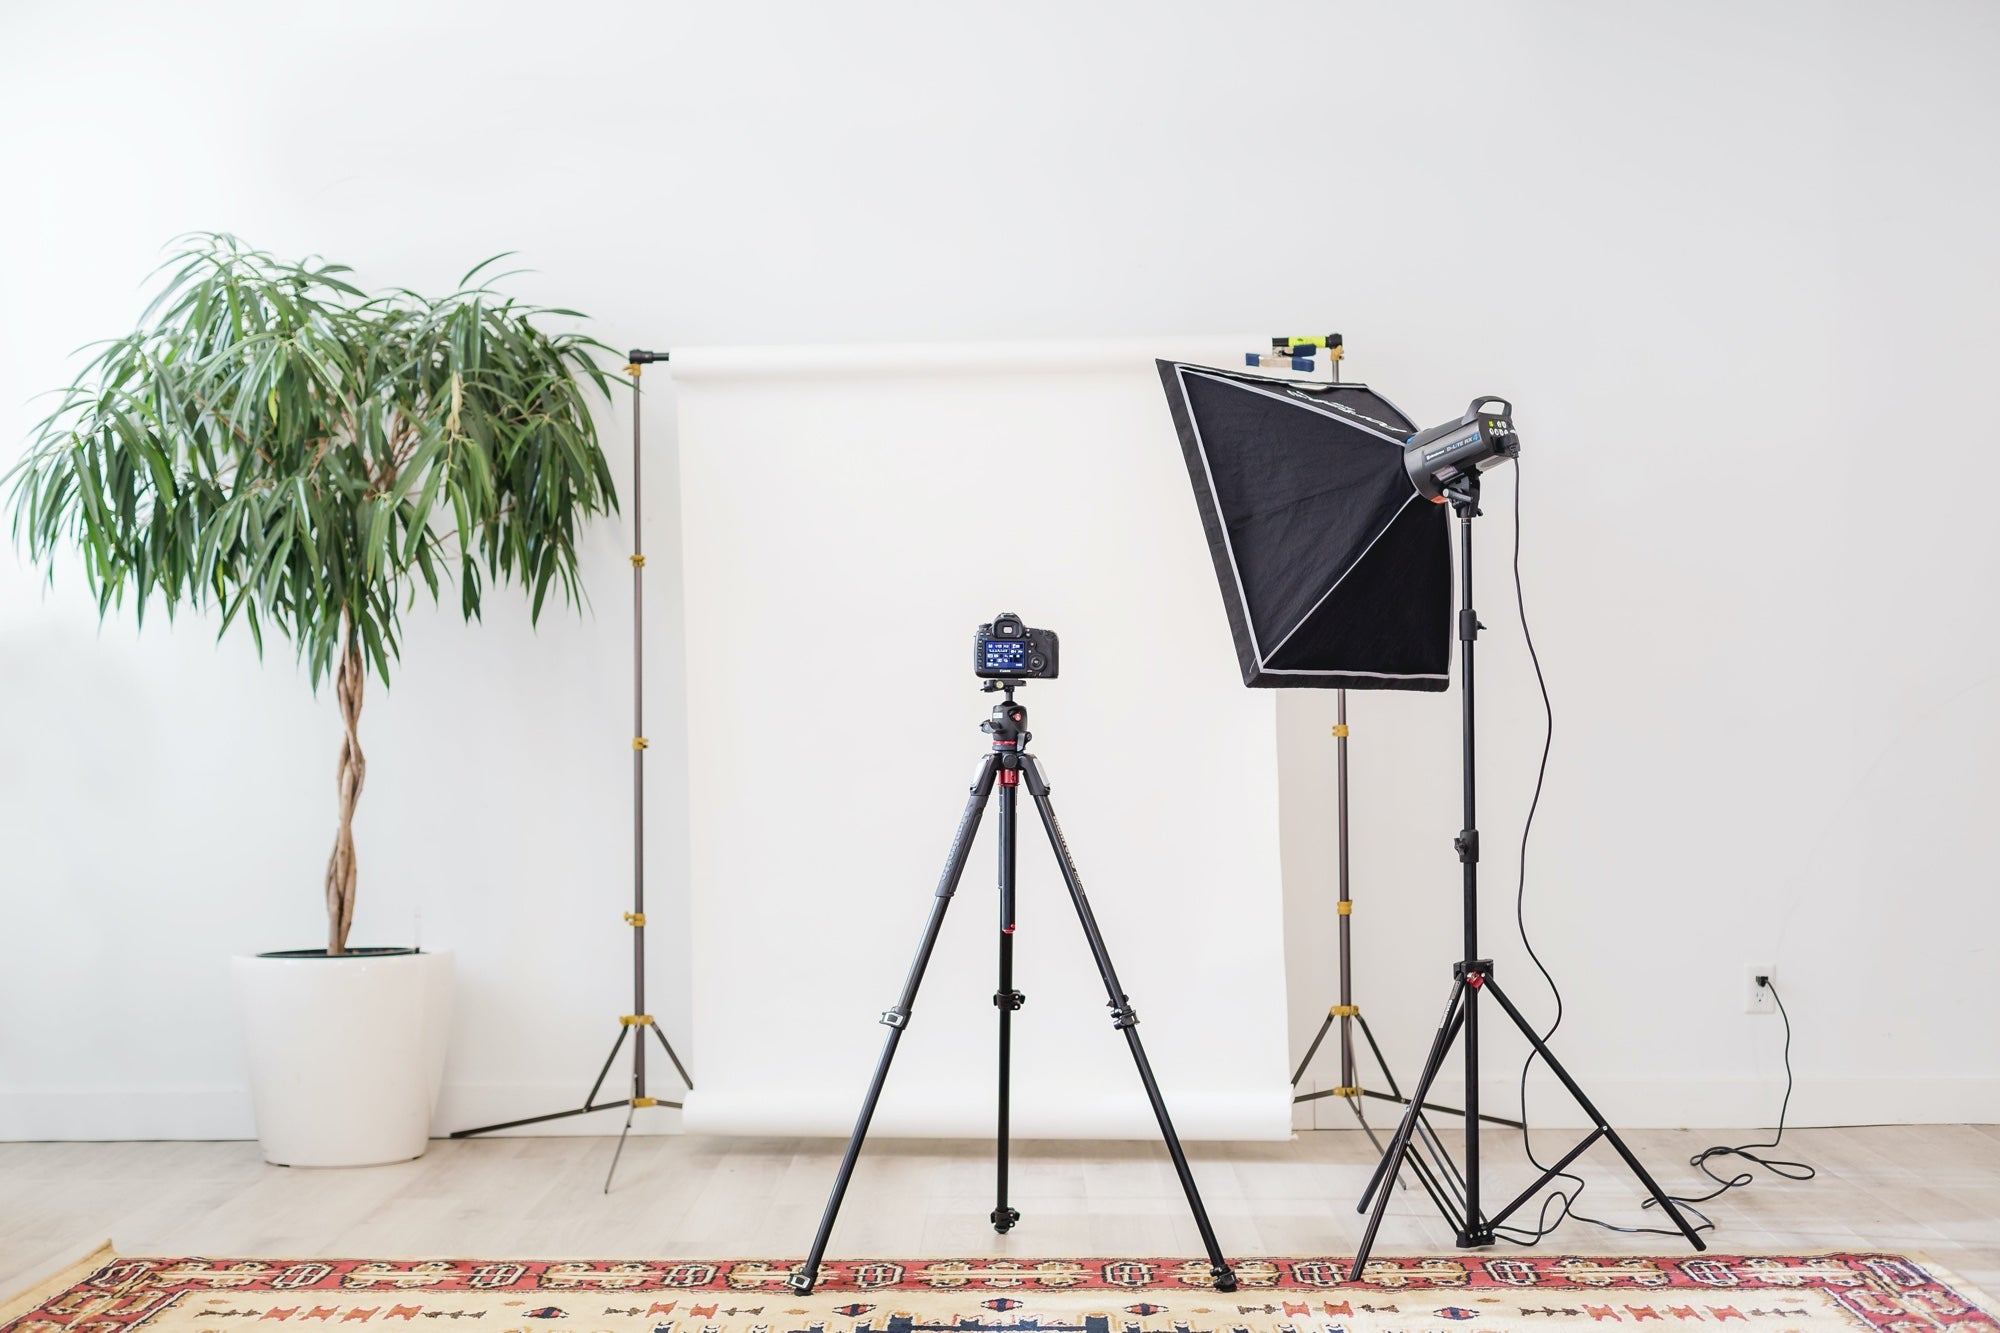 In-home camera set up with tripod, lights and a plant